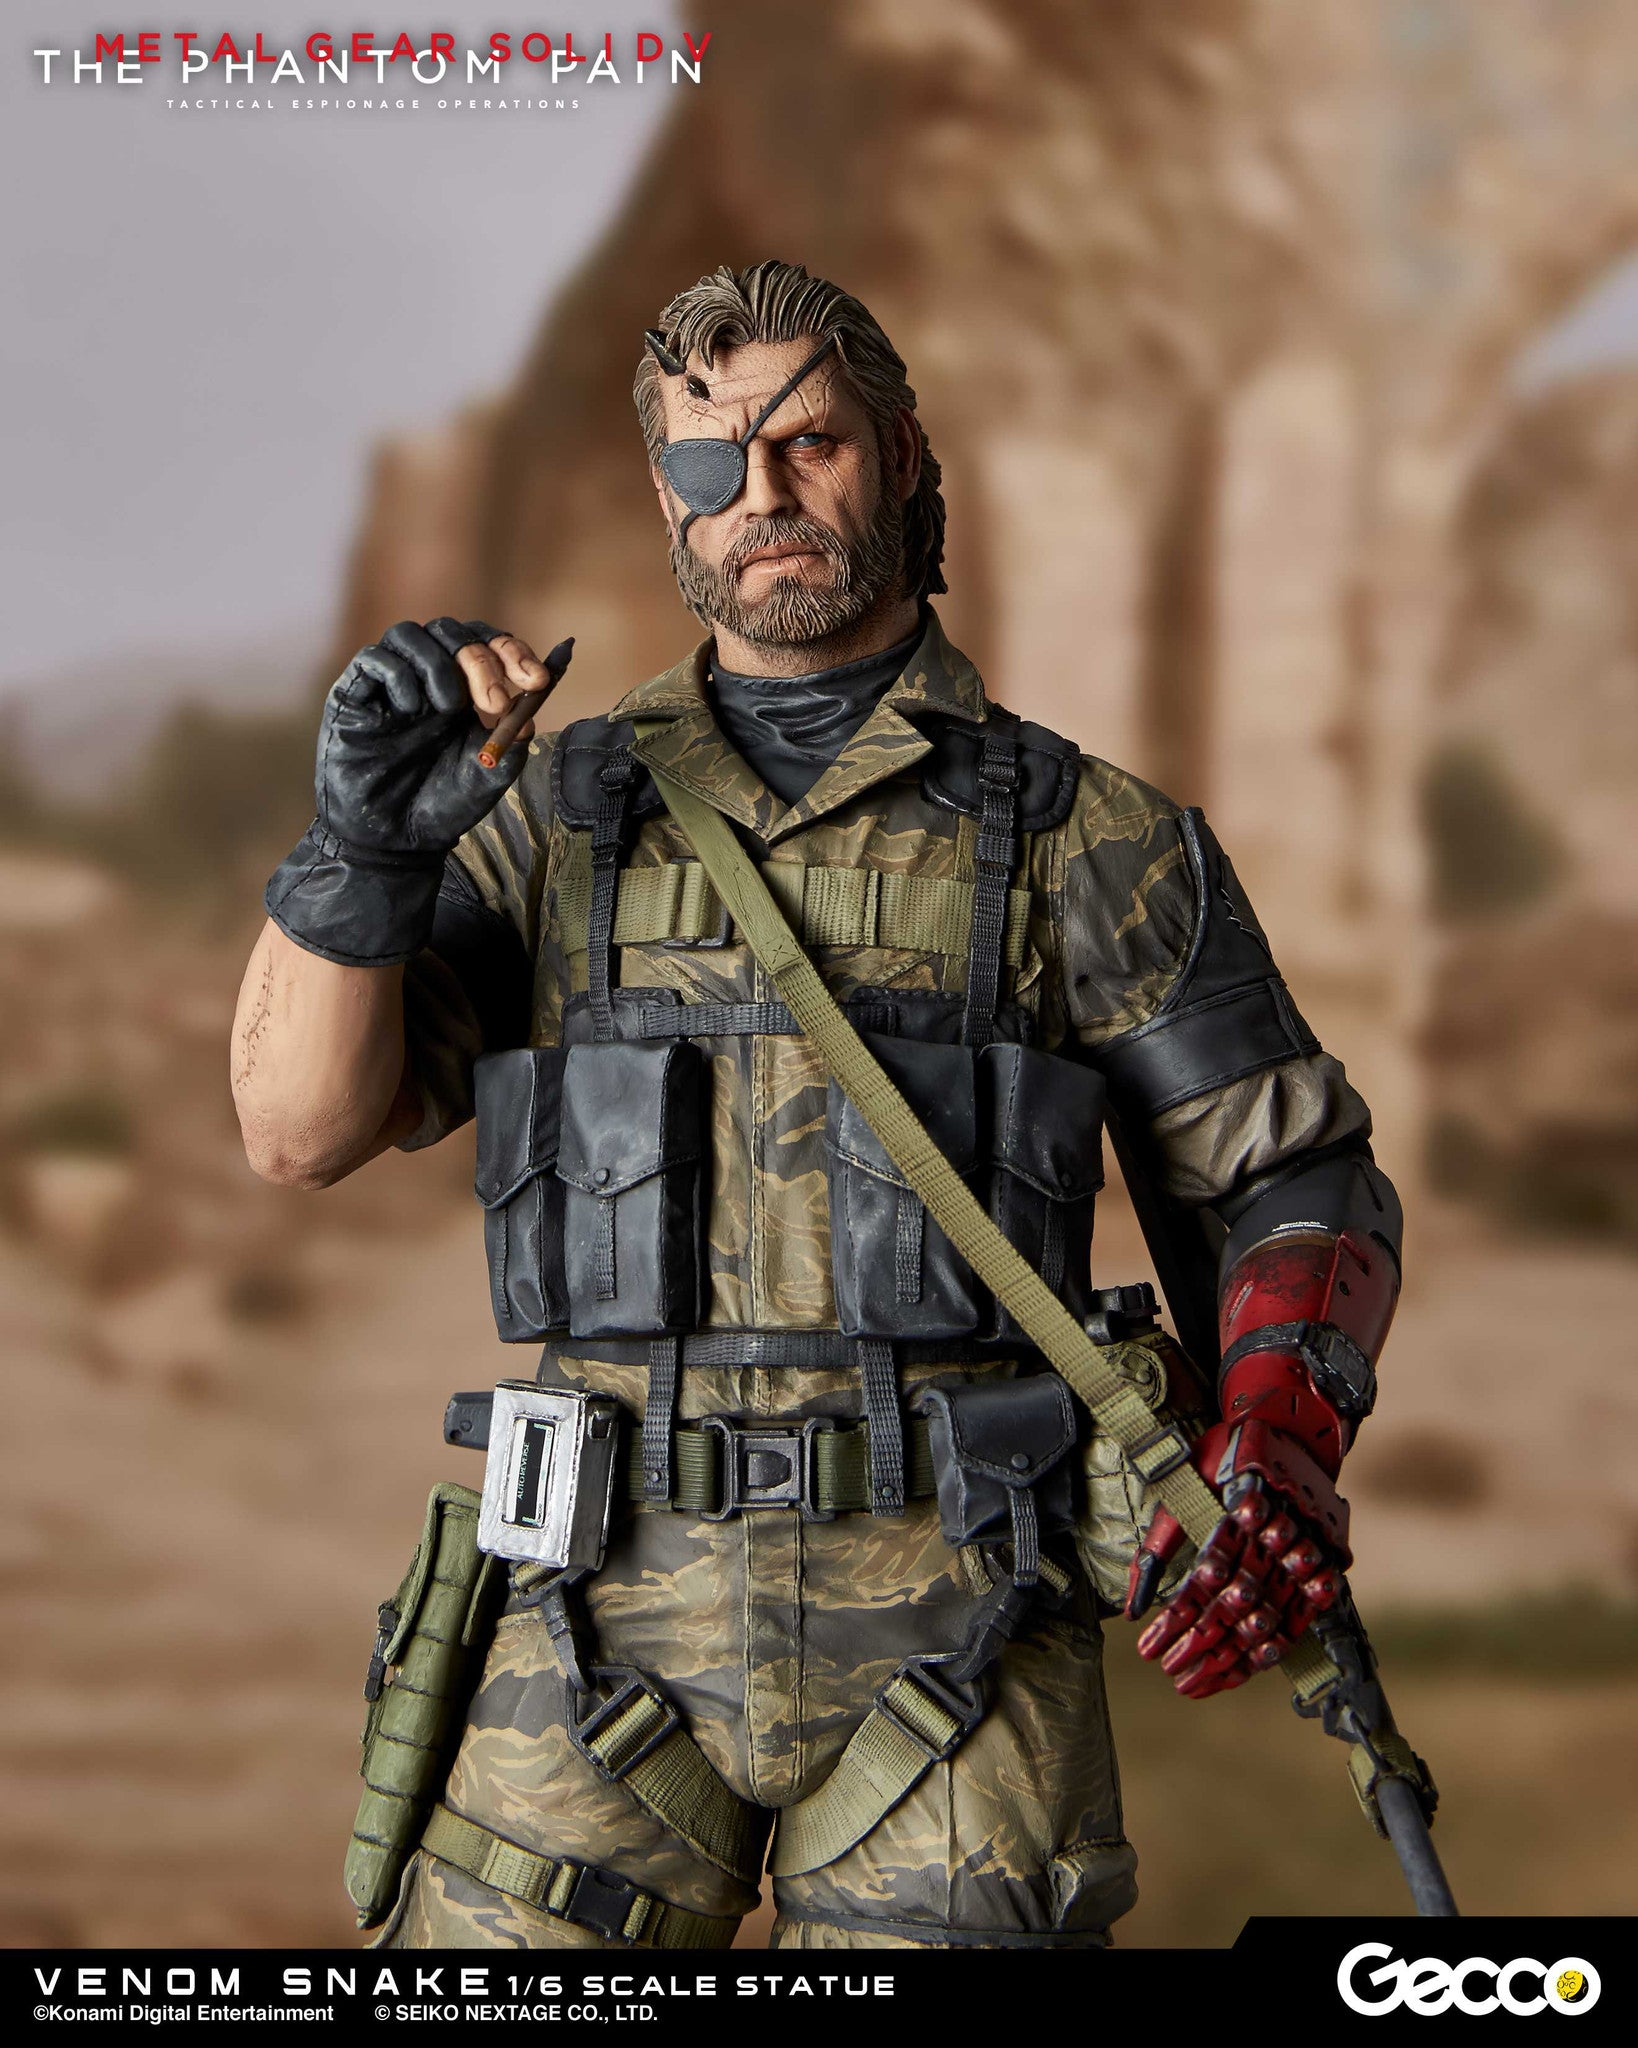 Gecco - Metal Gear Solid V: The Phantom Pain - Venom Snake 1/6 Scale Statue - Marvelous Toys - 5